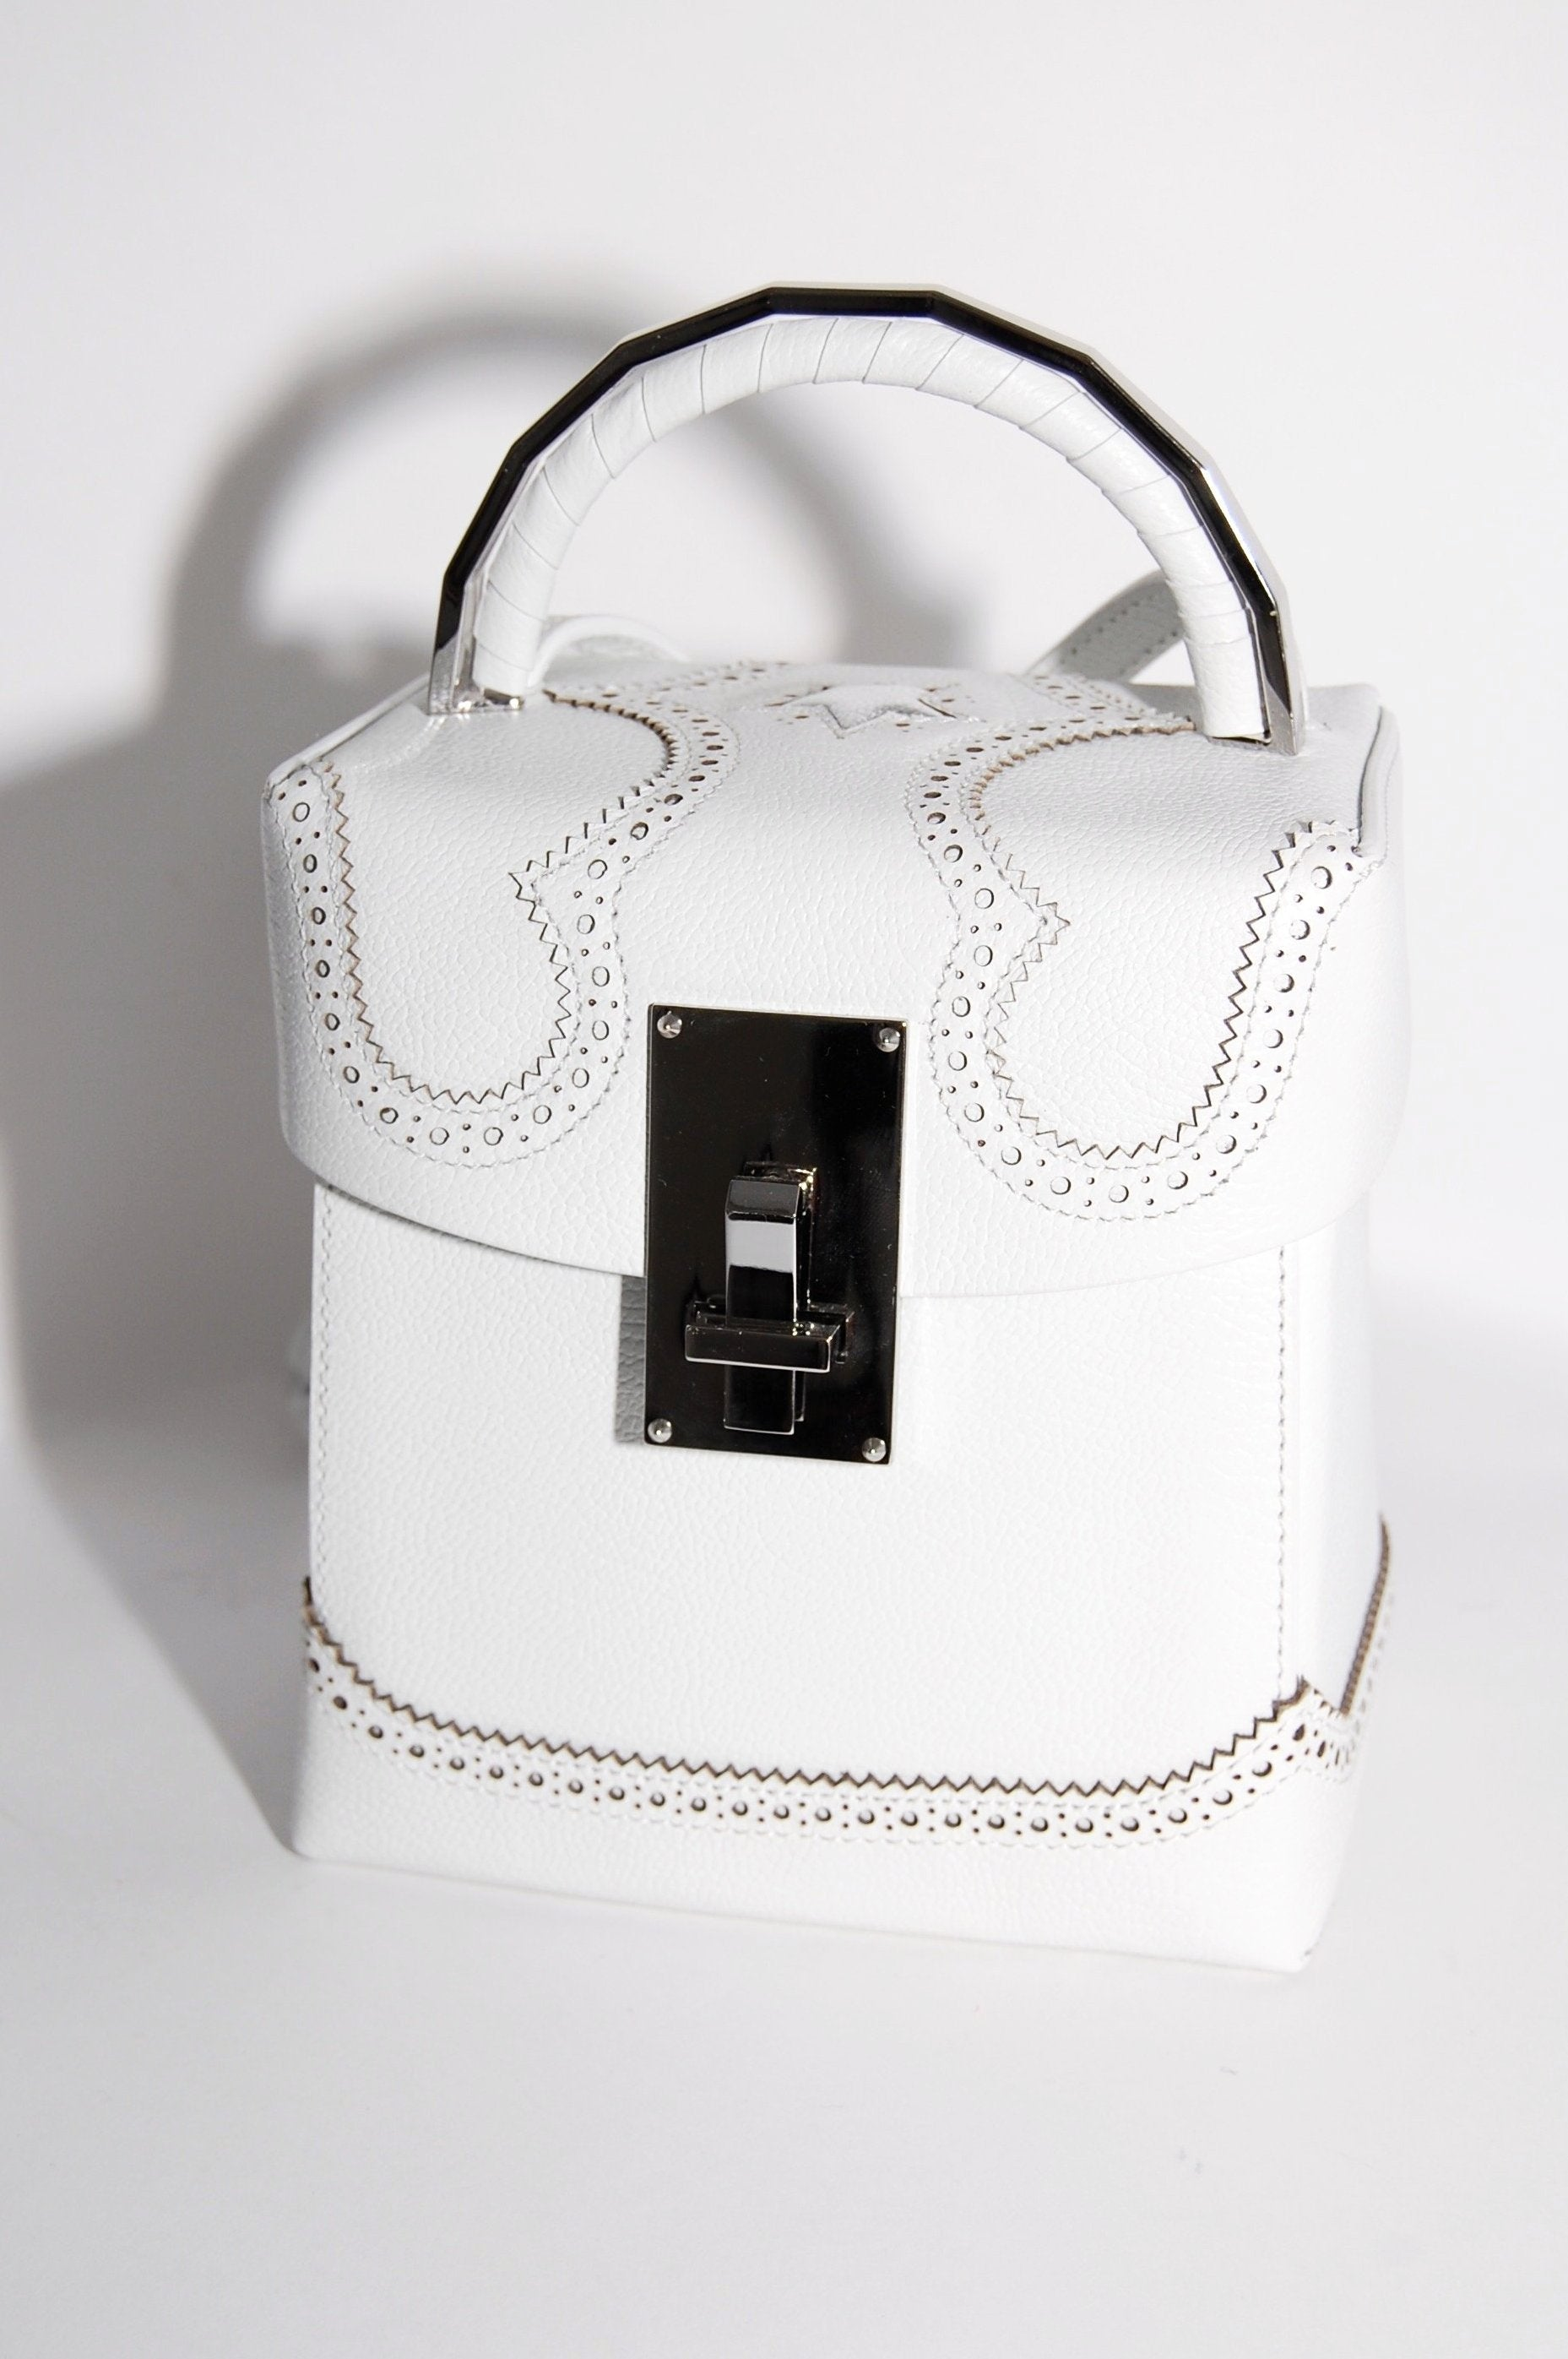 777bcb4bbf9a The Volon Alice Great L. Box Bag in White Leather - Curio Concept Store